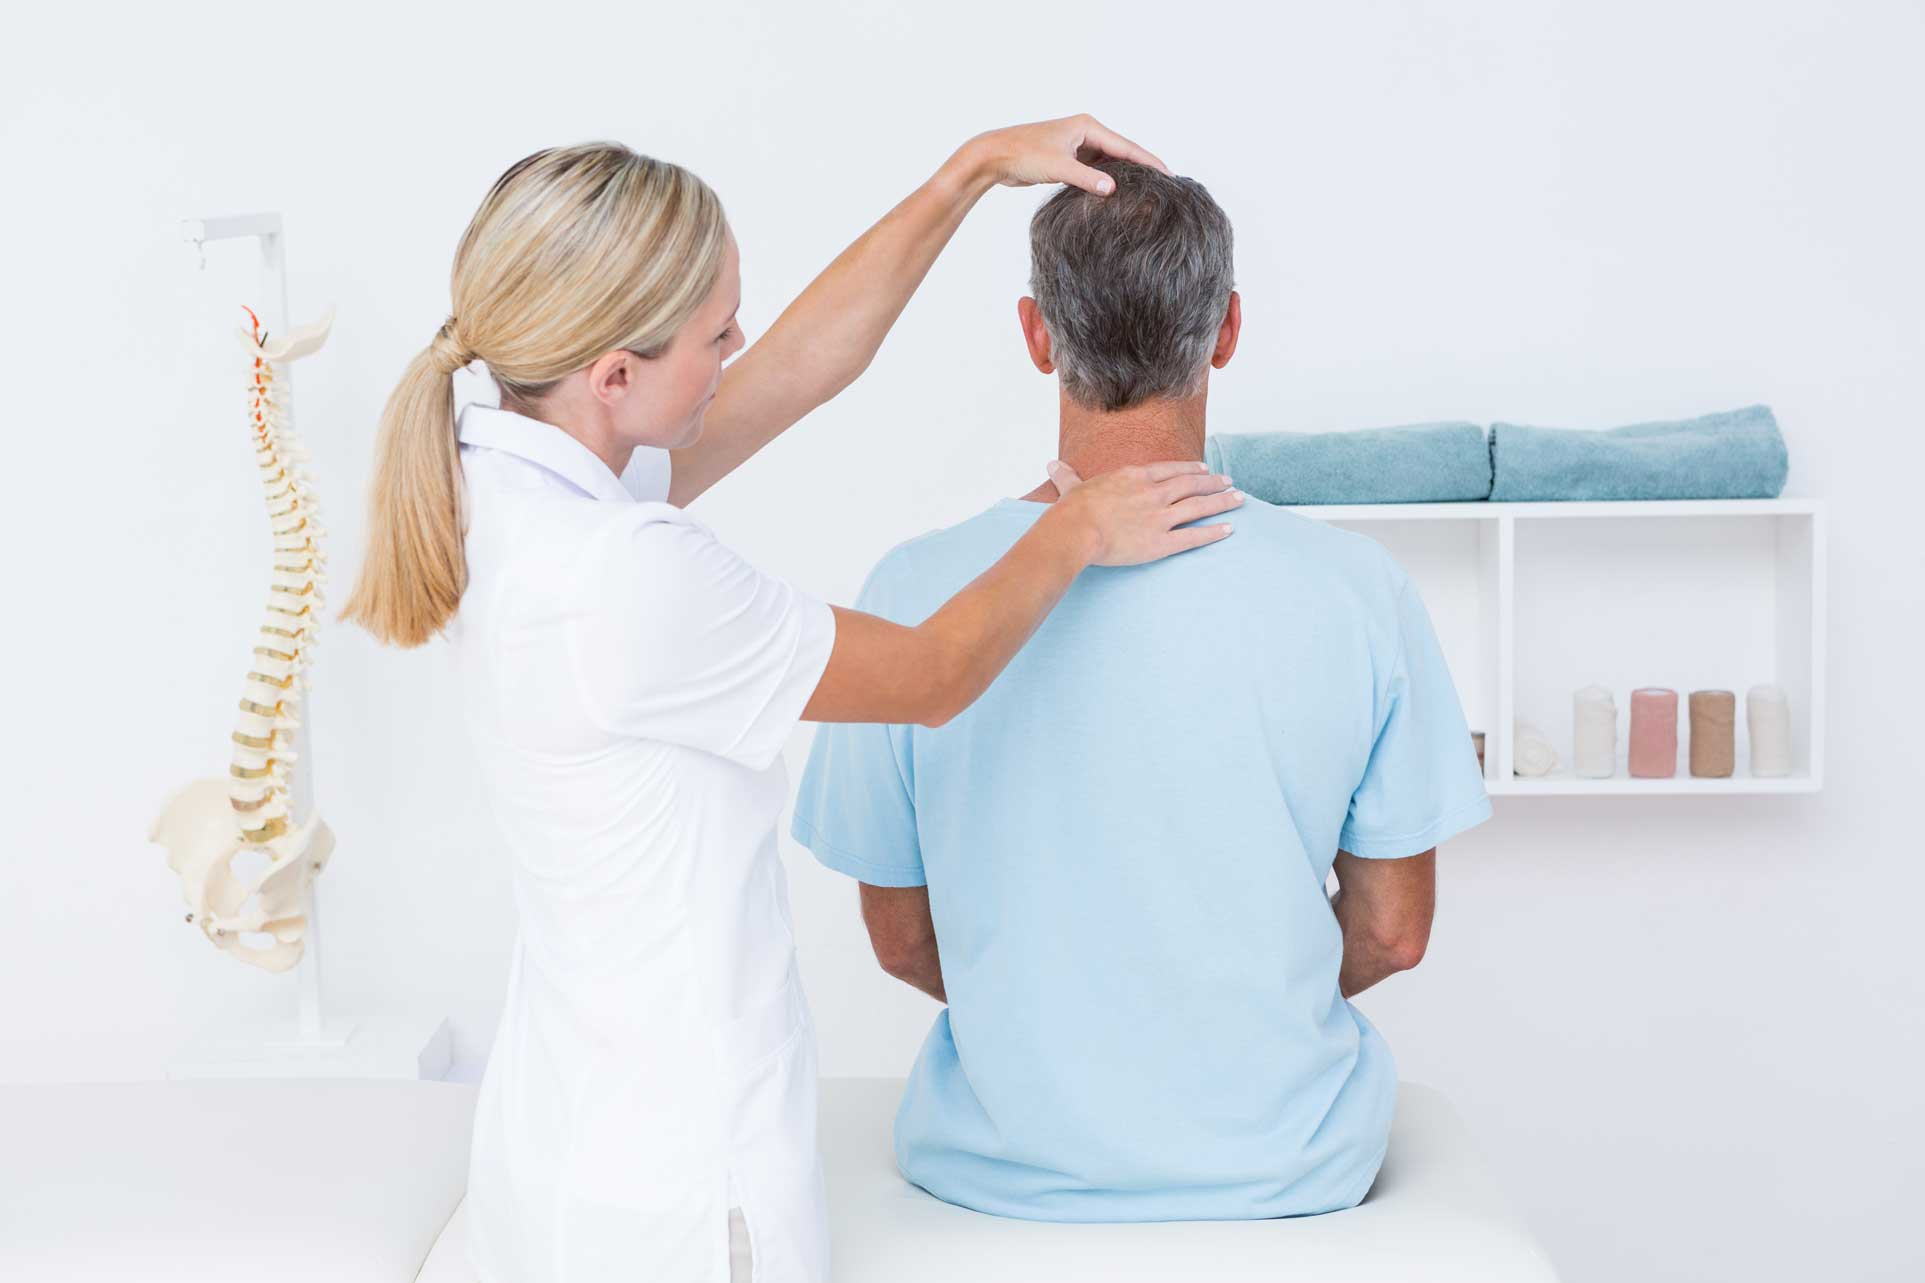 Female chiropractor checking alignment of man's neck.